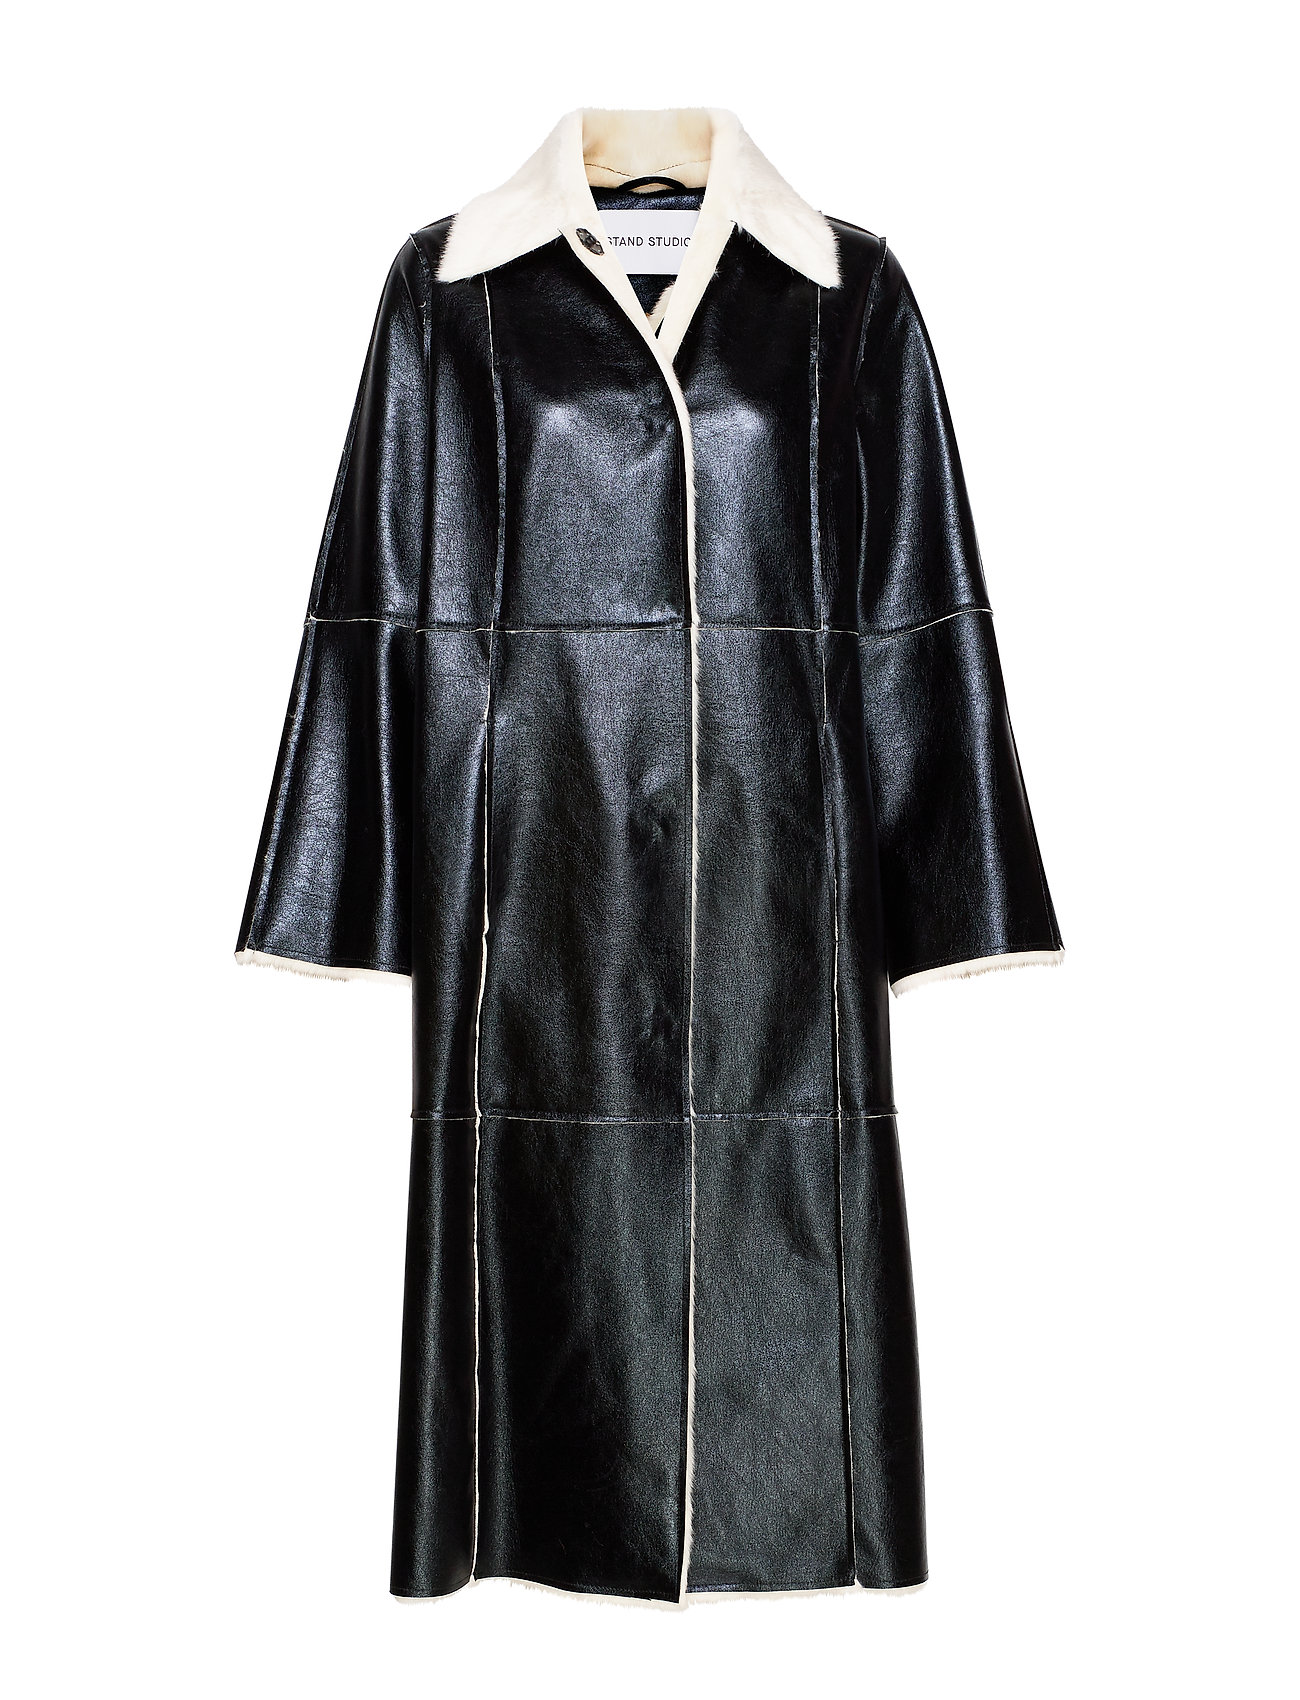 Stand Studio Nino Coat - BLACK/WHITE